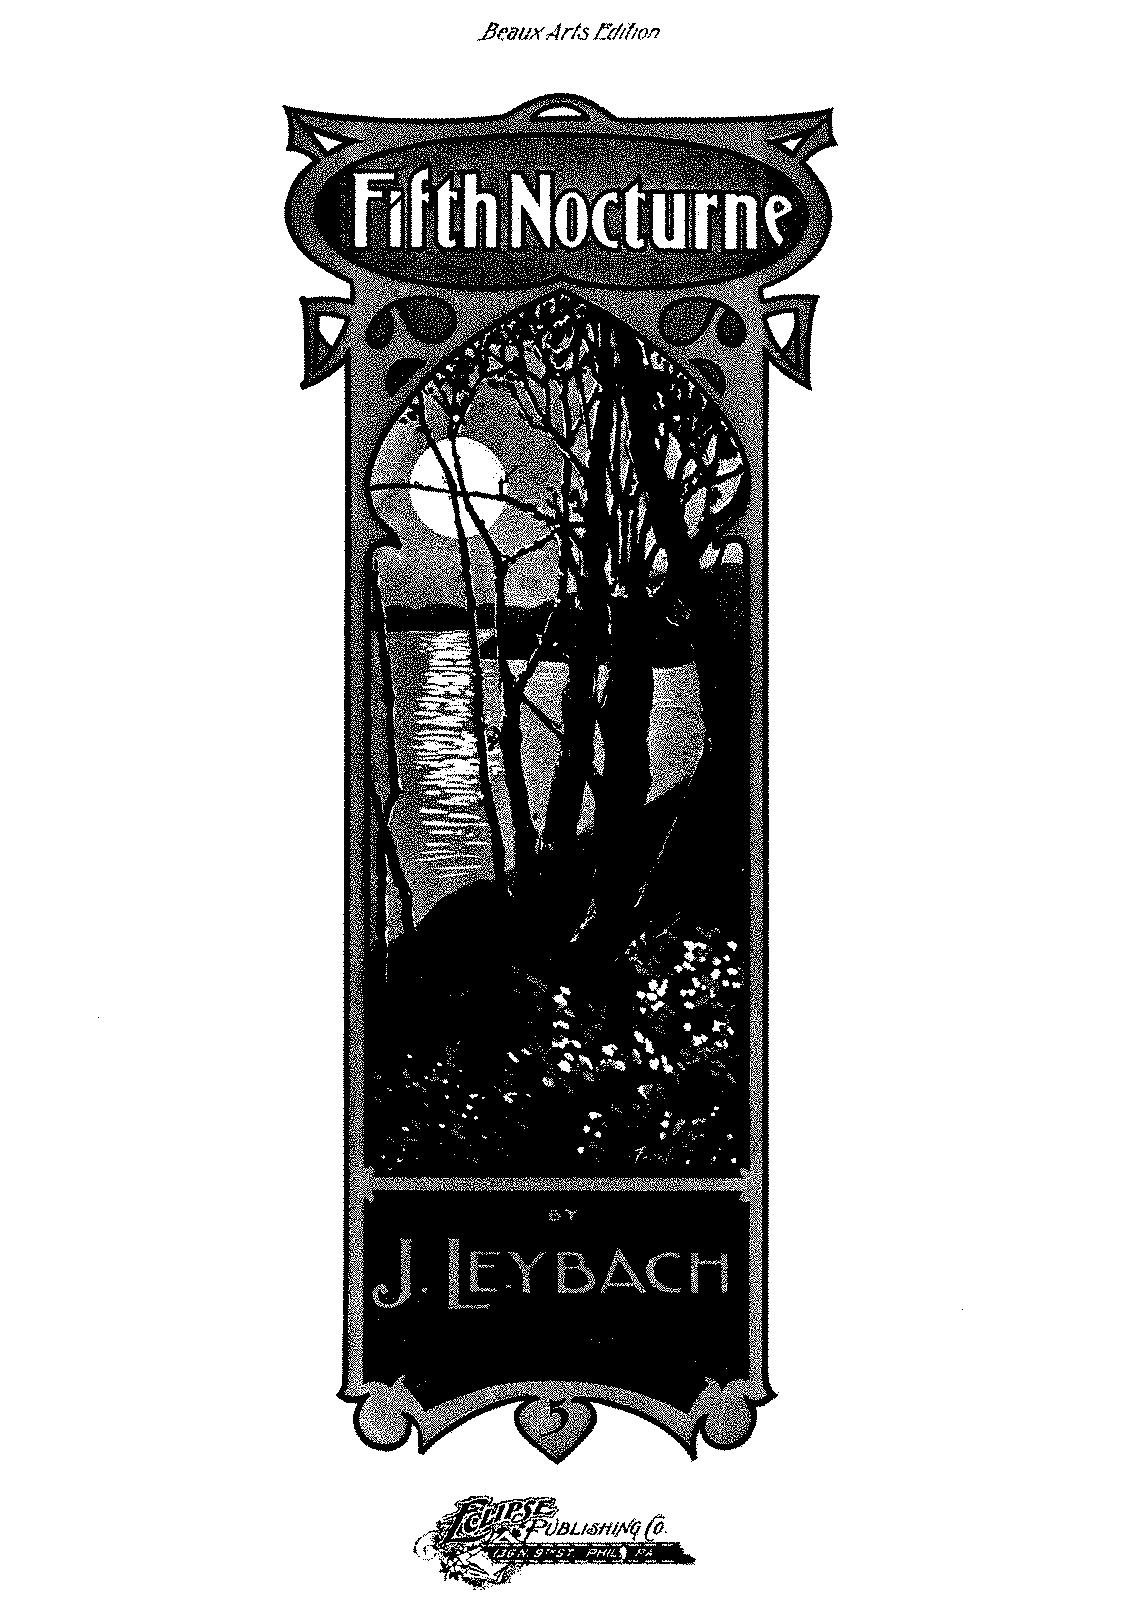 PMLP25283-Leybach - 52 5th Nocturne op 52 - Edition Eclips - UNC.pdf